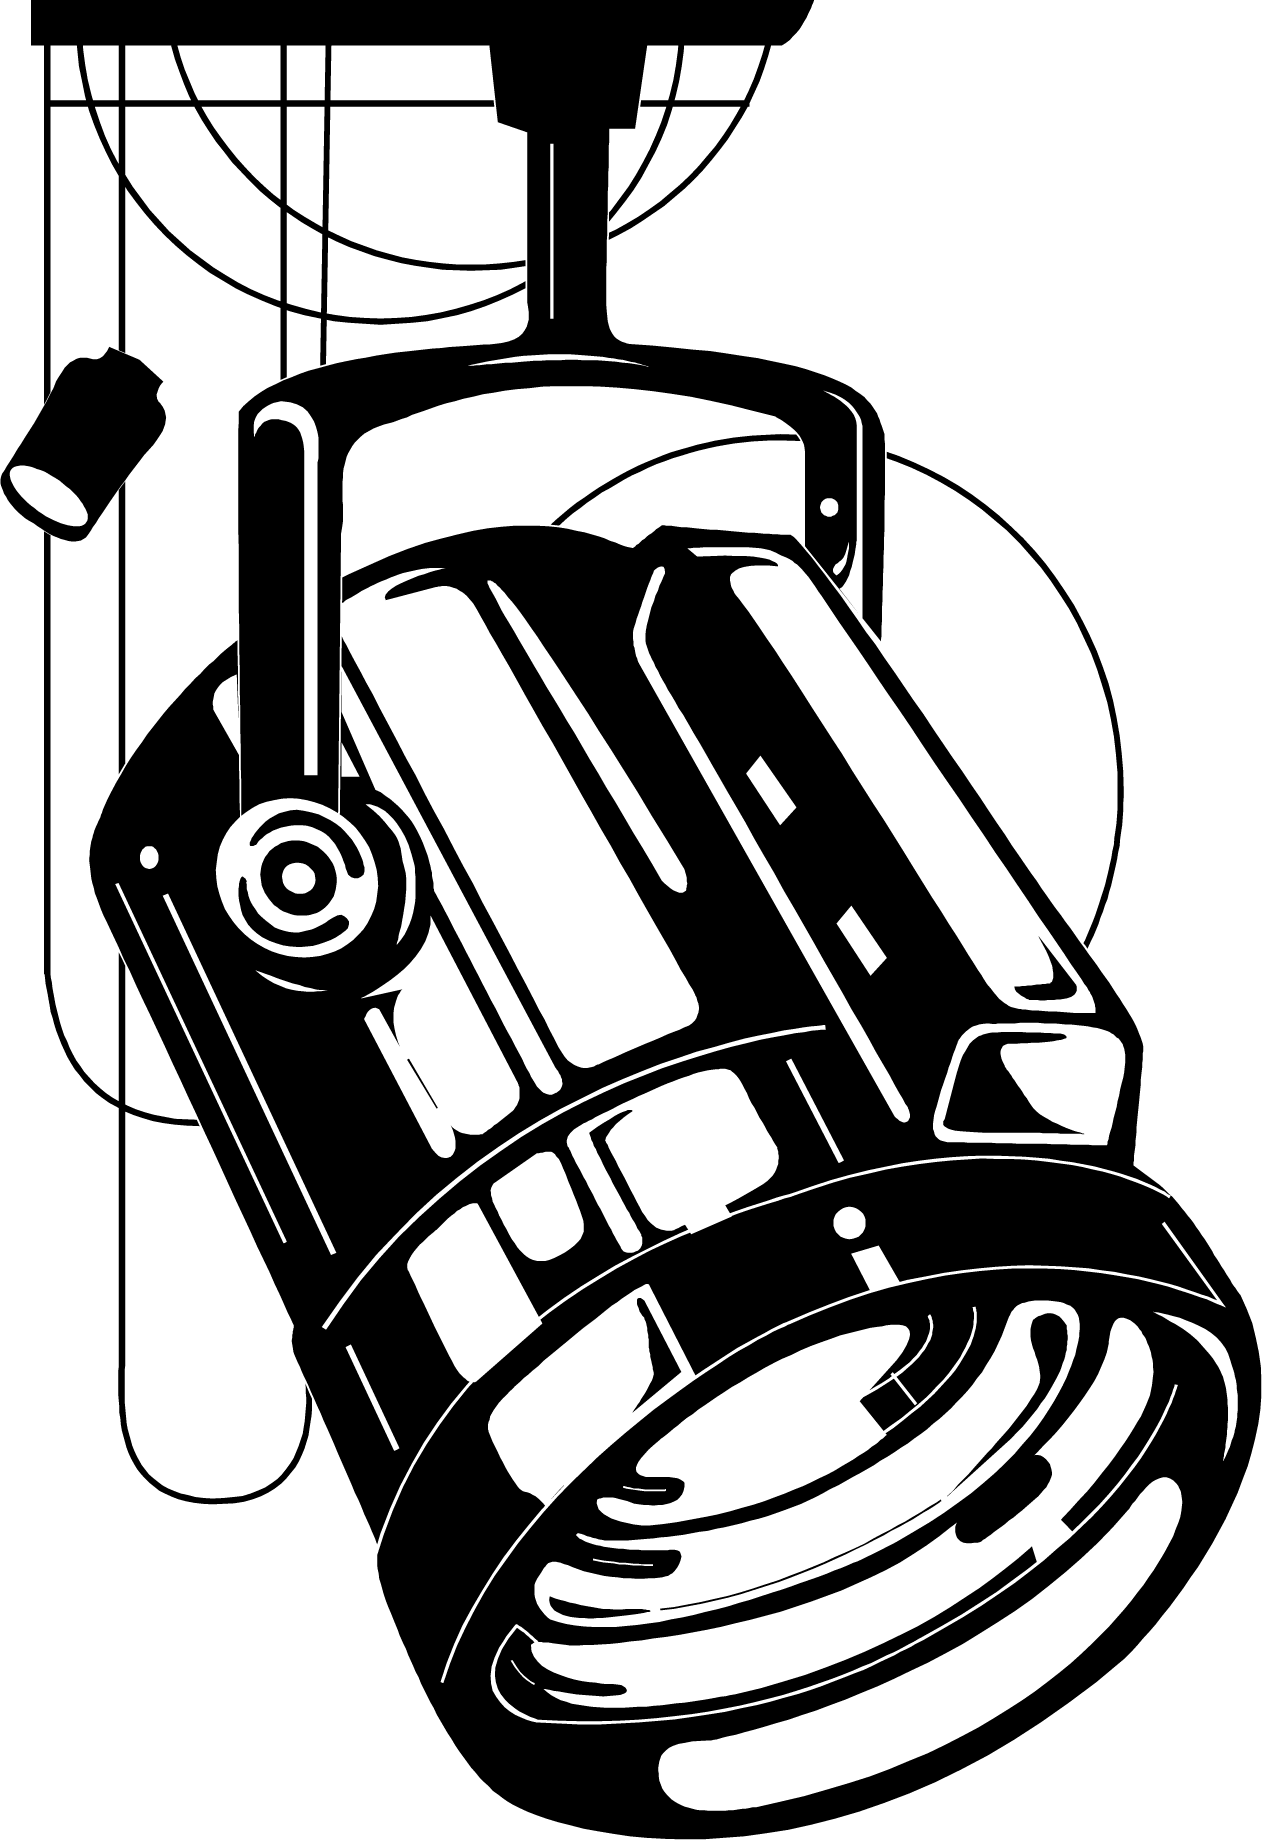 Stage light drawing at. Flashlight clipart black and white